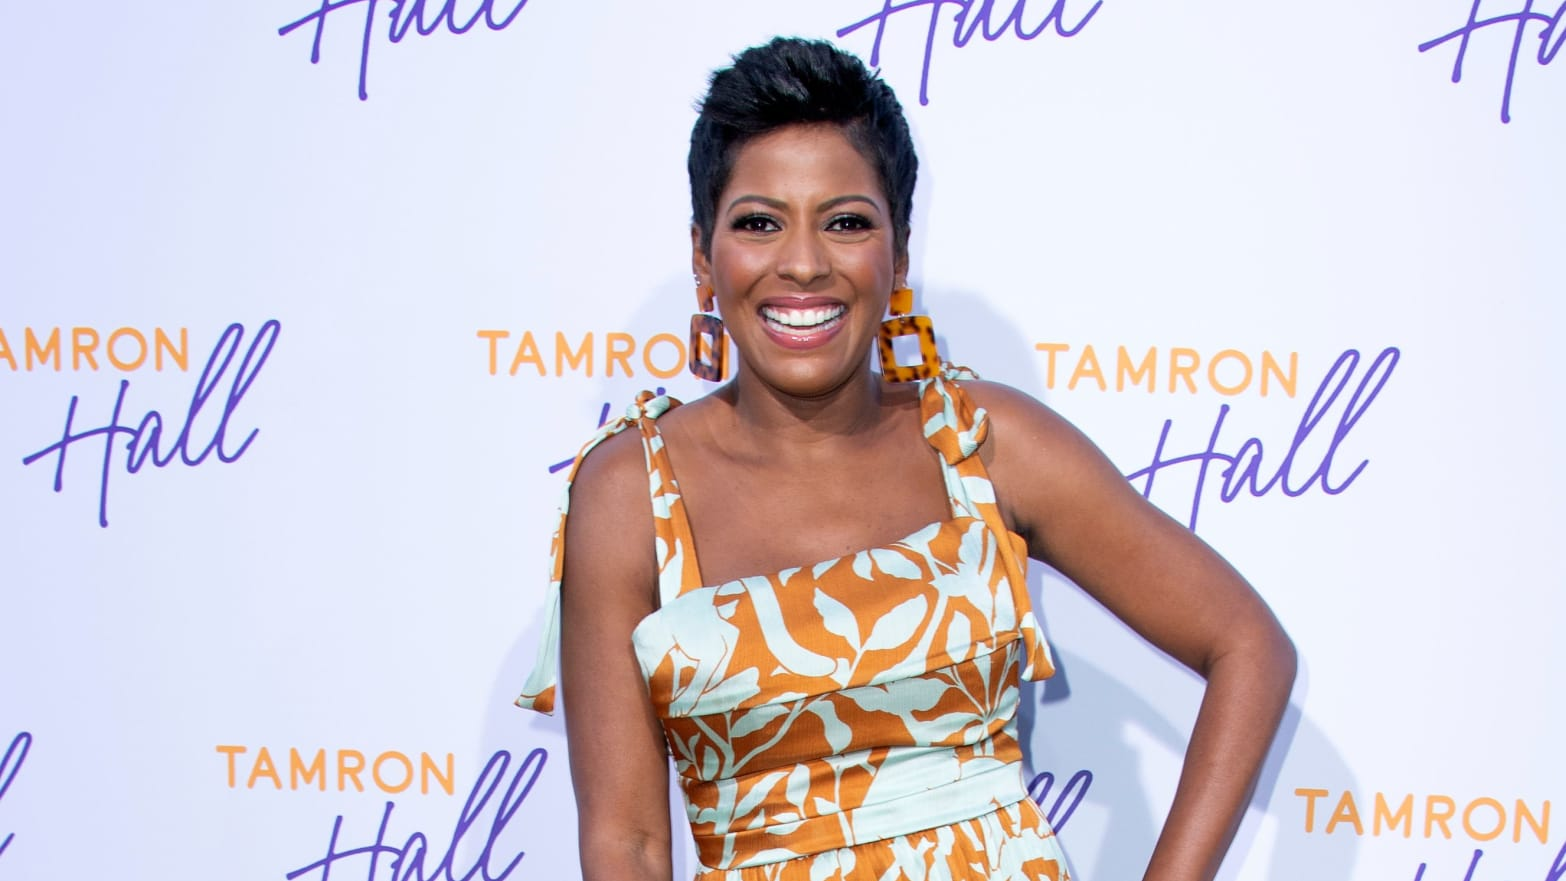 Tamron Hall: NBC Fired Me, Even if They Call It 'Demoted'